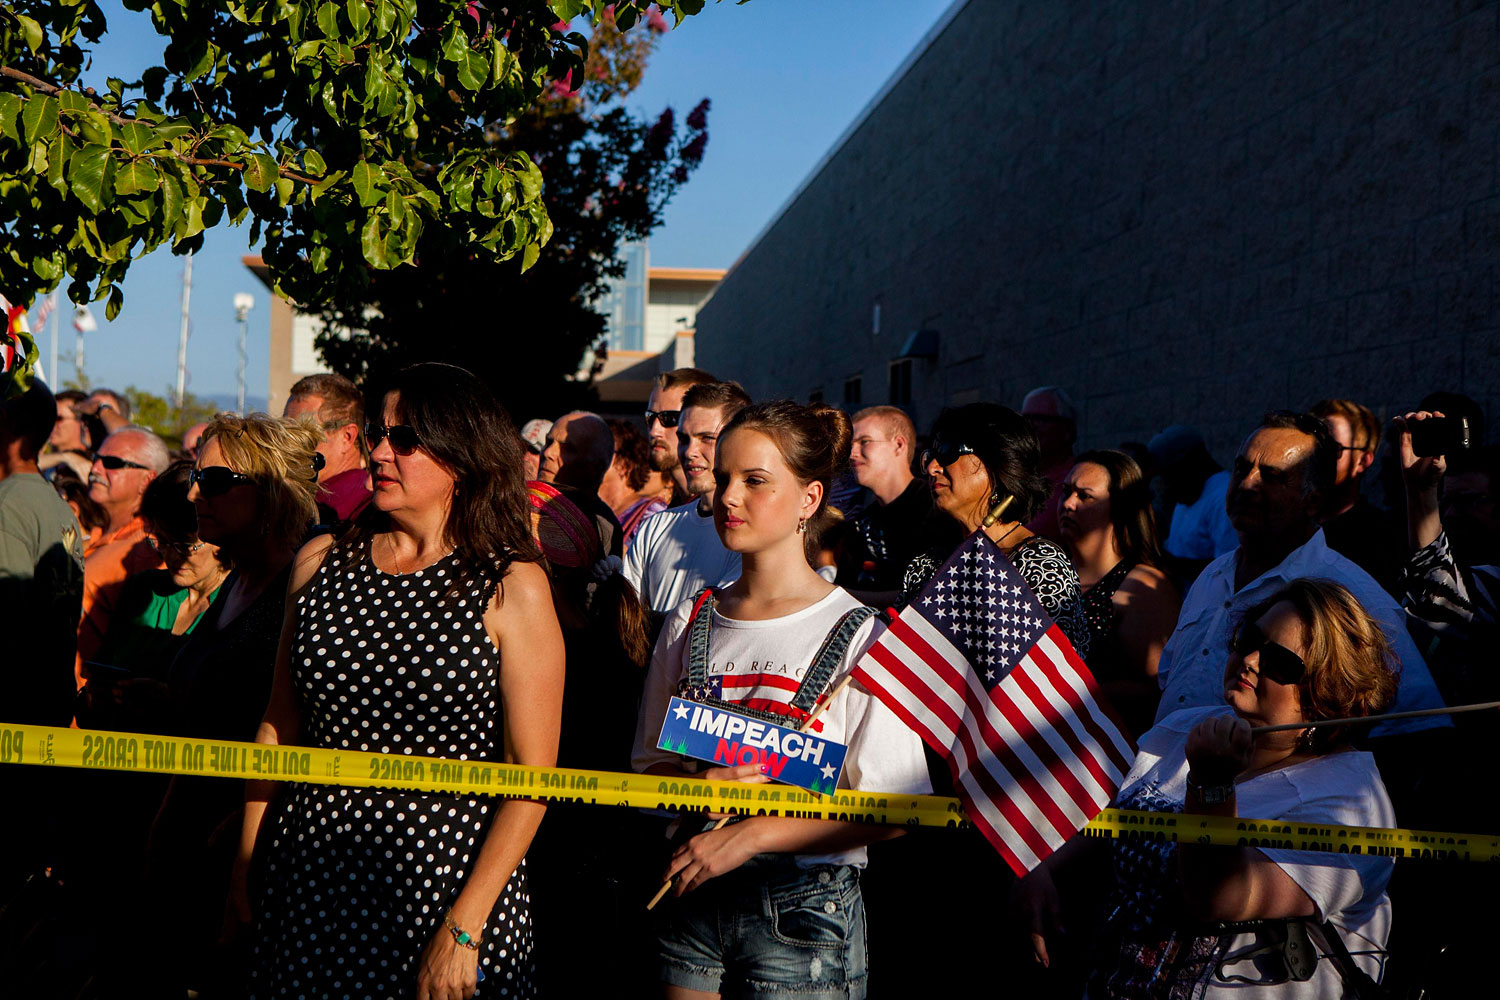 Residents and protestors attend a town hall meeting to discuss the processing of undocumented immigrants in Murrieta, Calif. July 2, 2014.